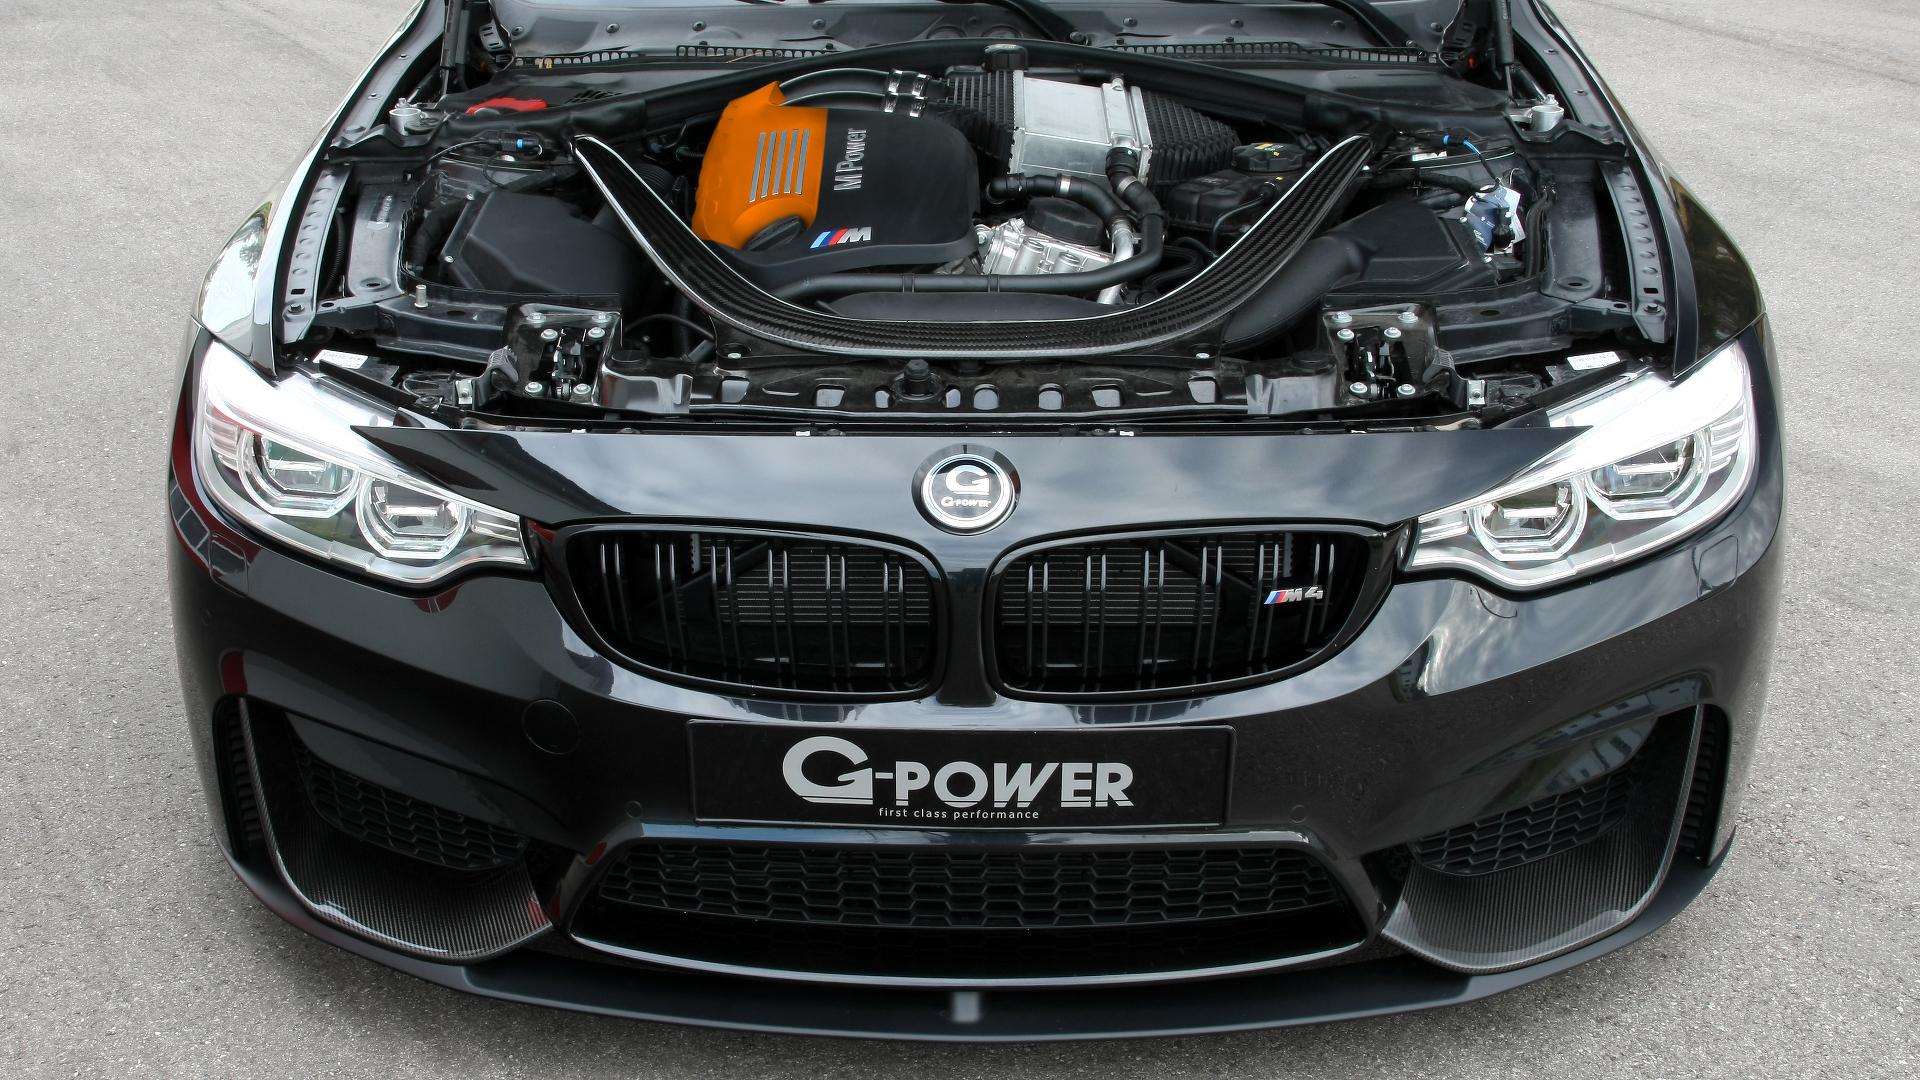 bmw-m4-convertible-tuning-g-power-9